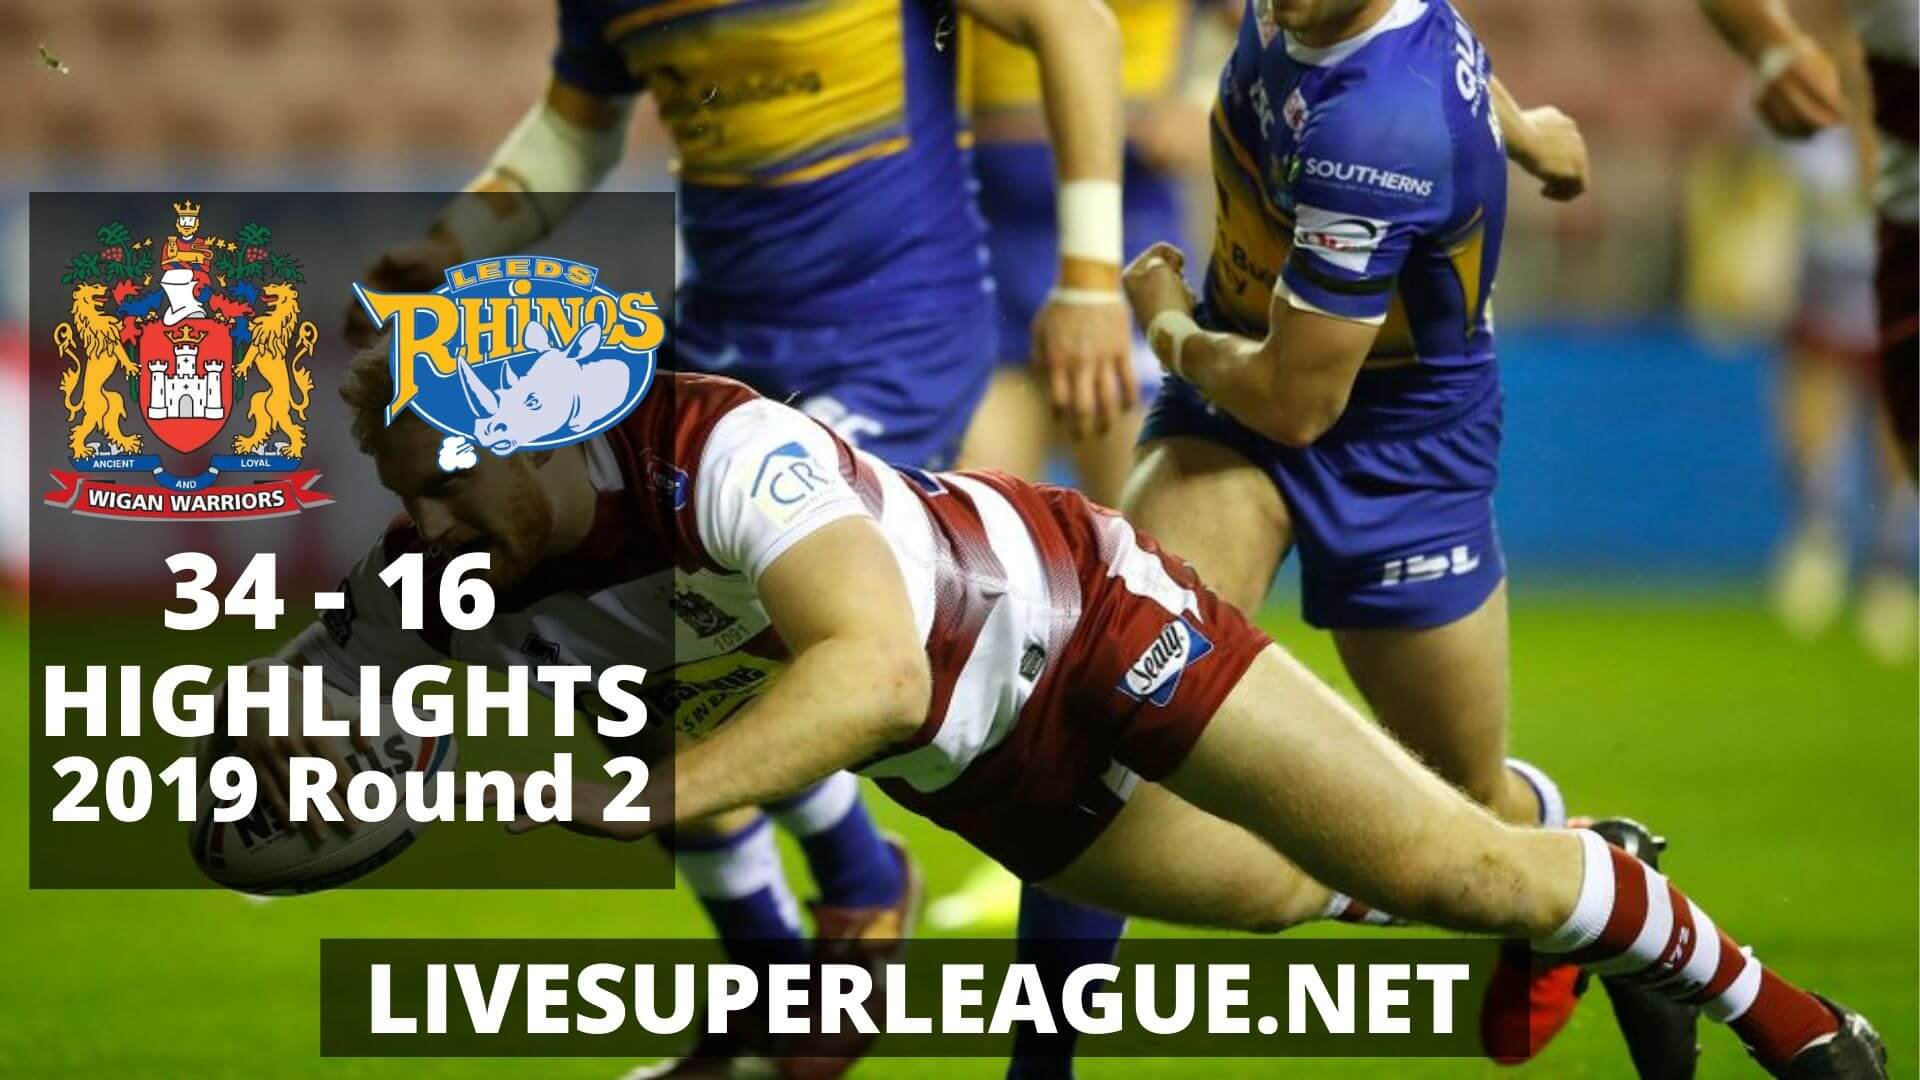 Wigan Warriors Vs Leeds Rhinos Highlights 2019 Round 2